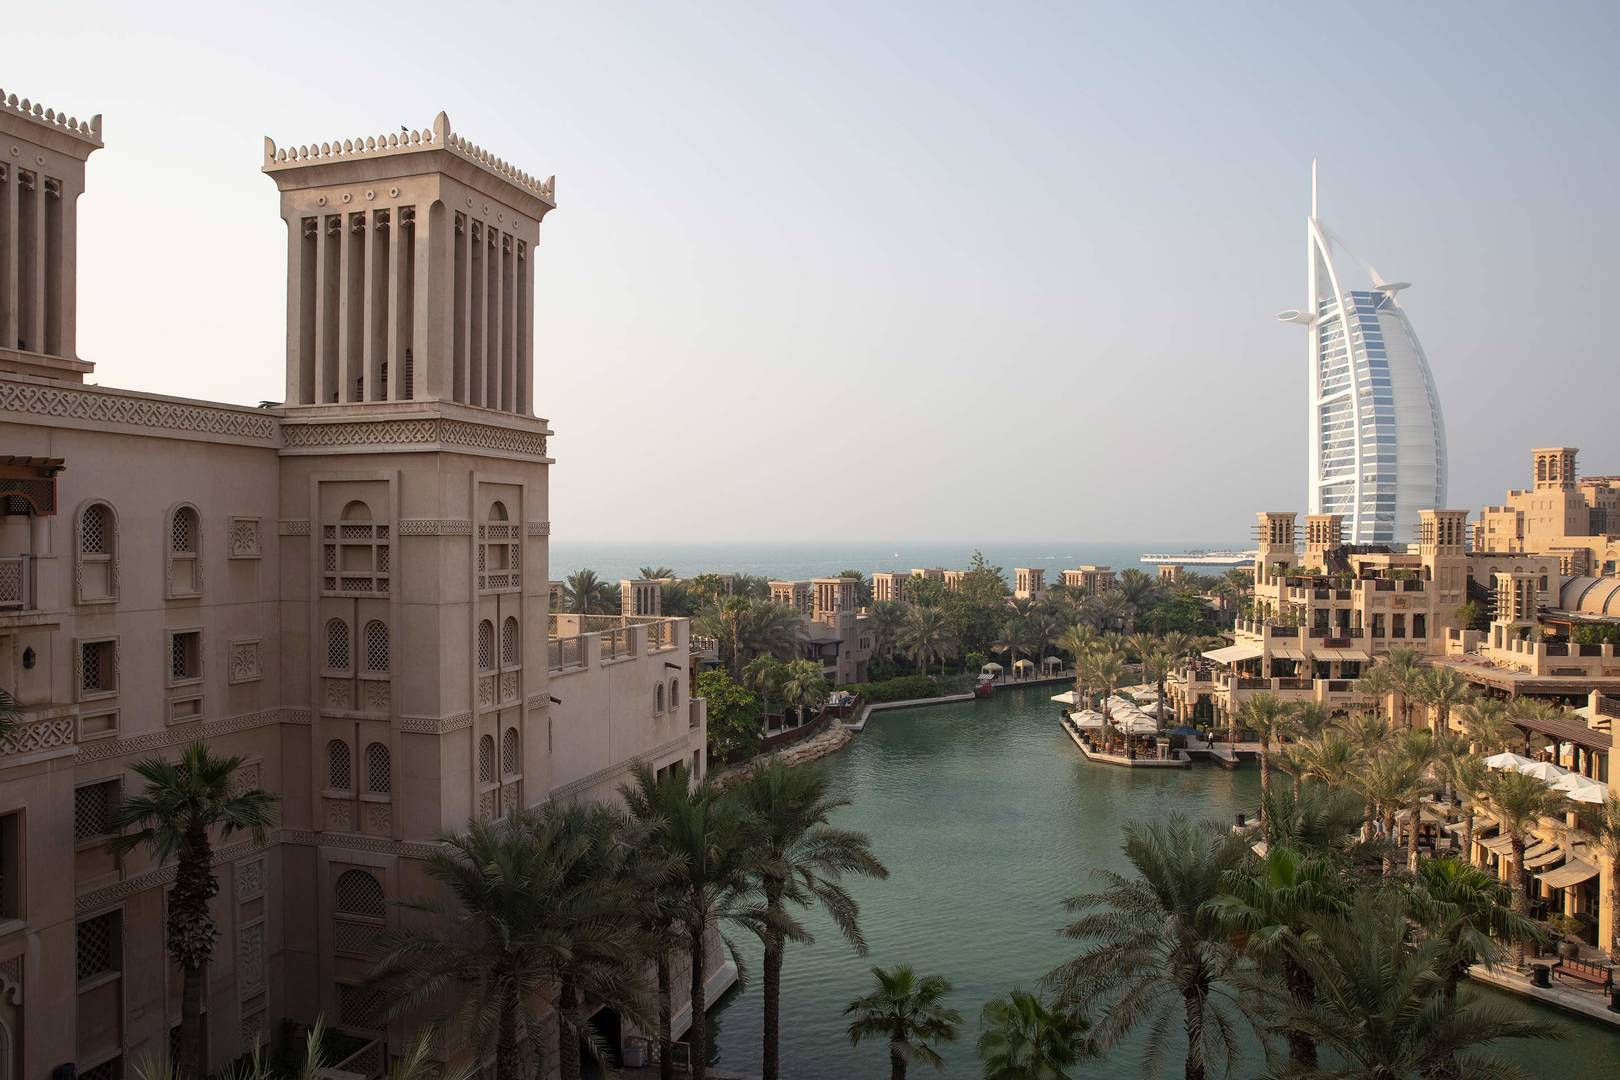 View of the Jumeirah Al Qasr hotel